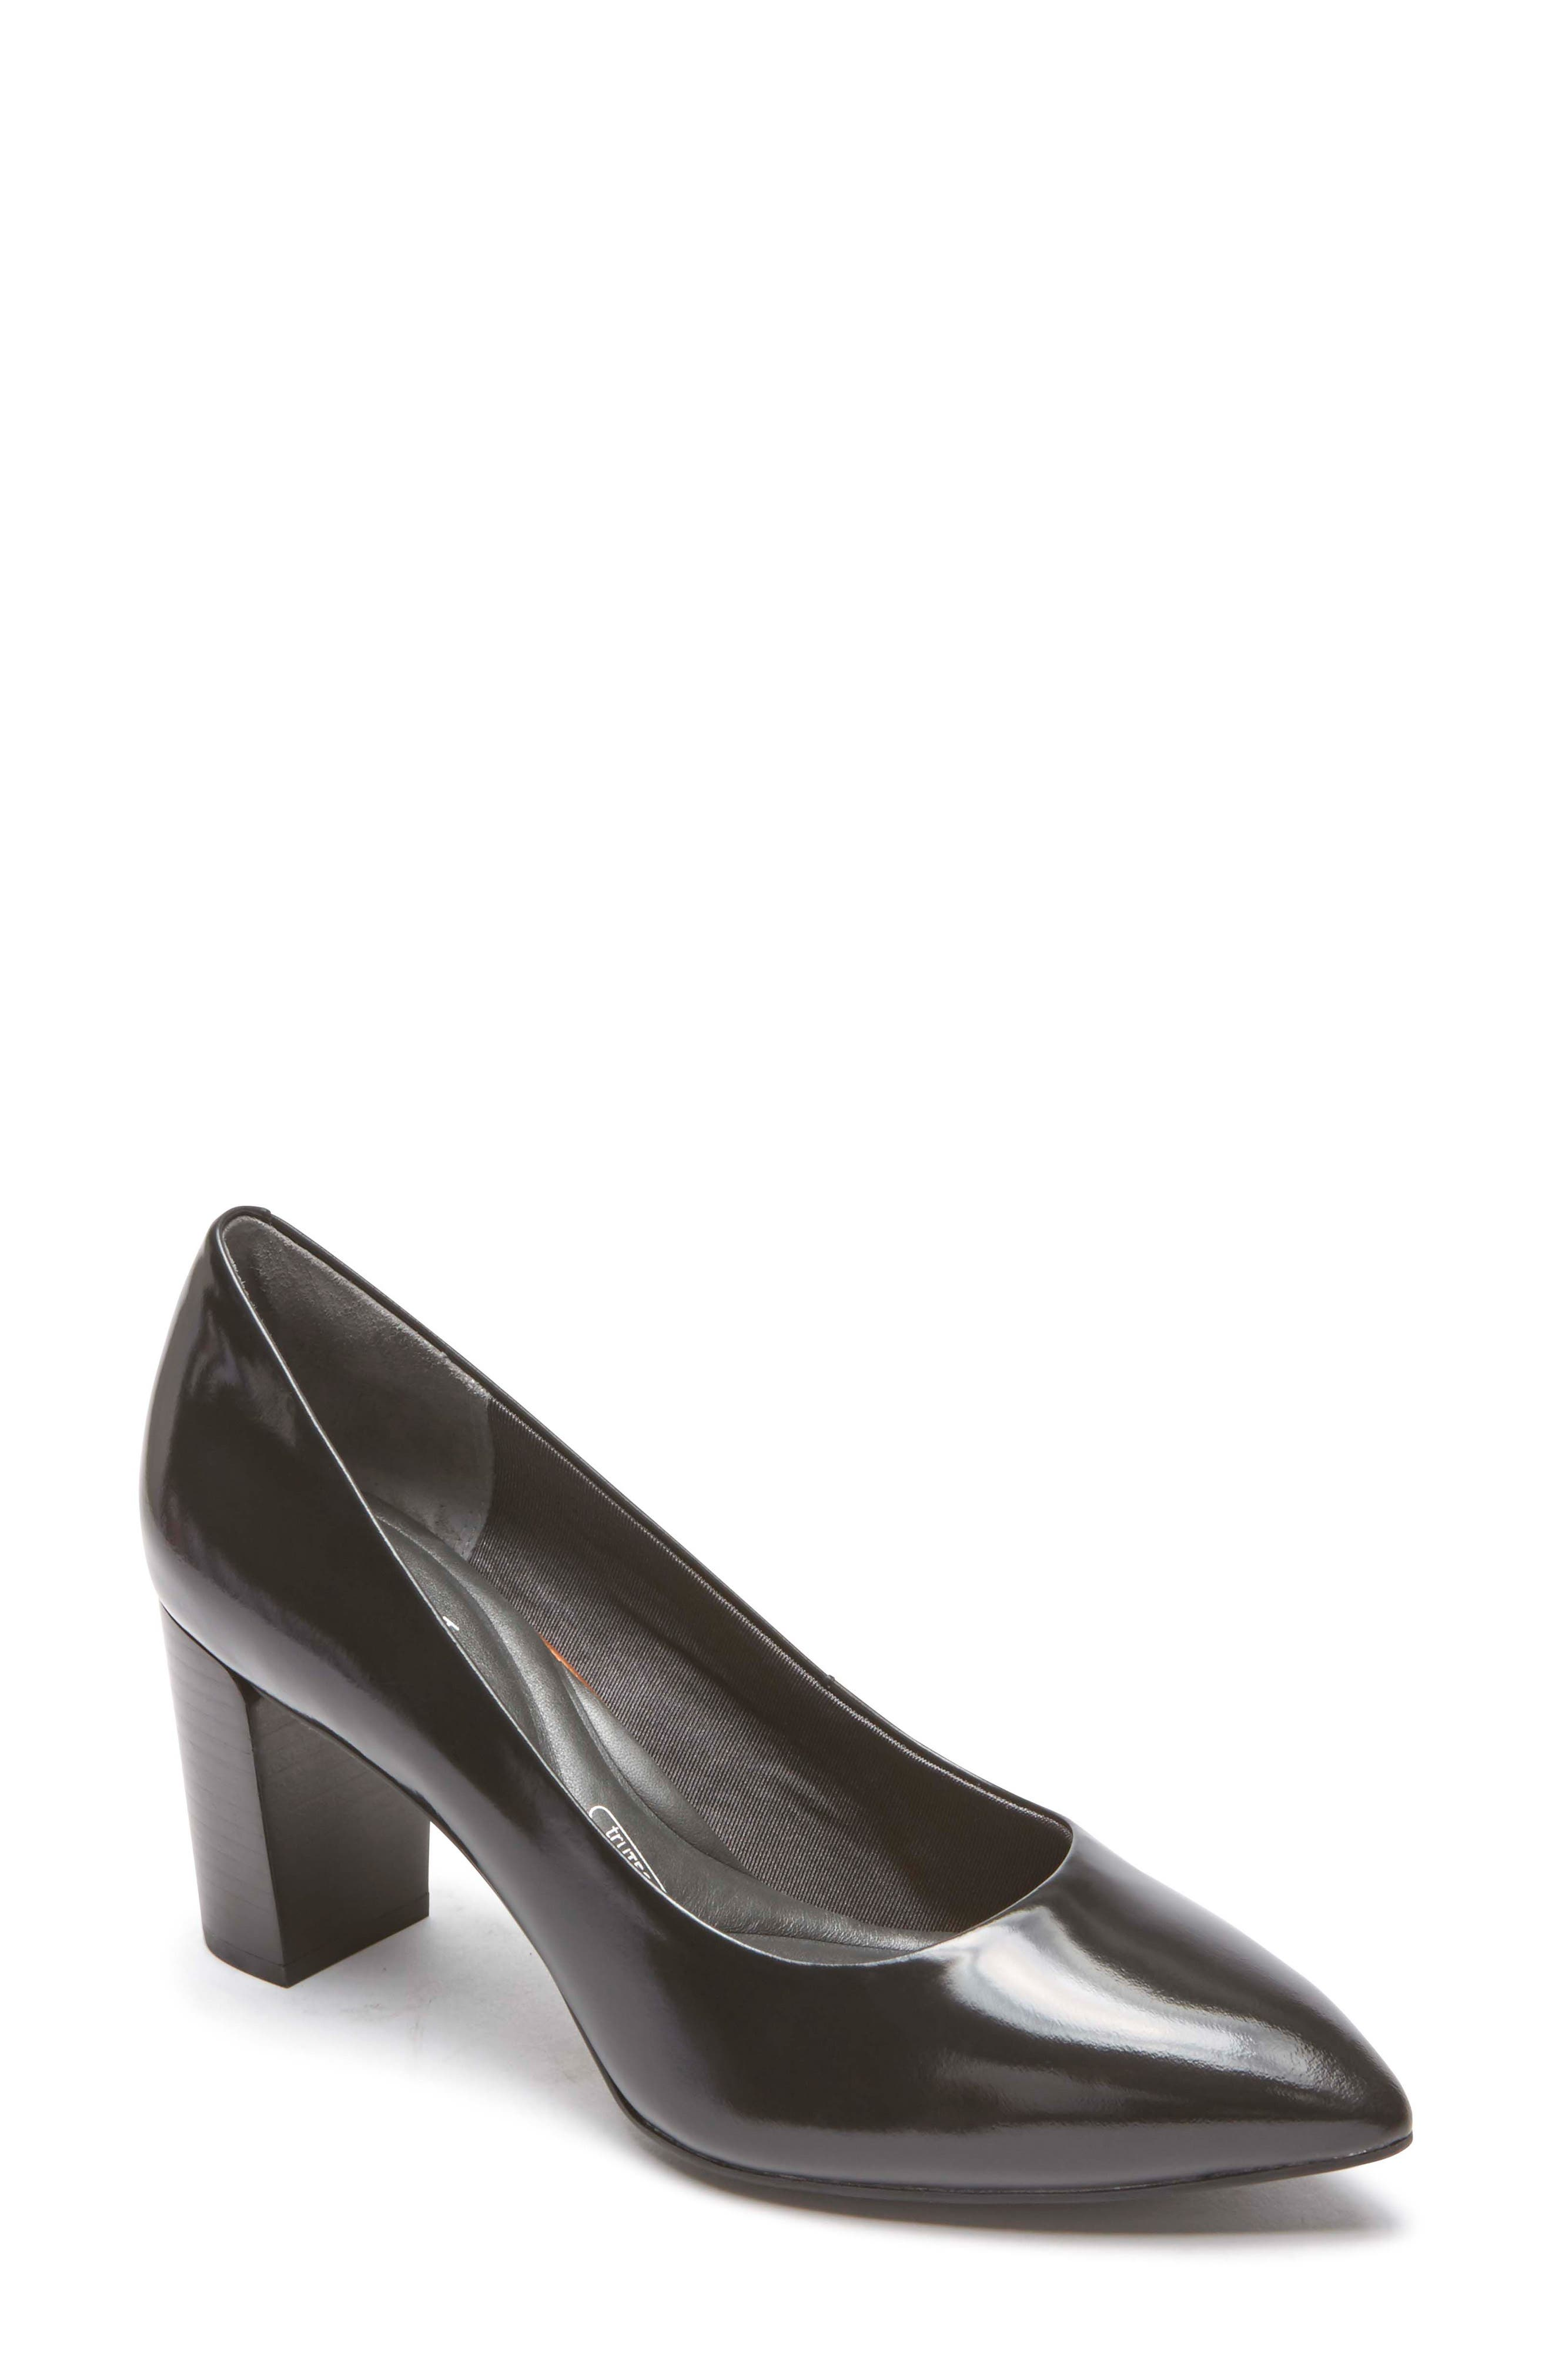 Total Motion Violina Luxe Pointy Toe Pump,                             Main thumbnail 1, color,                             BLACK PATENT LEATHER